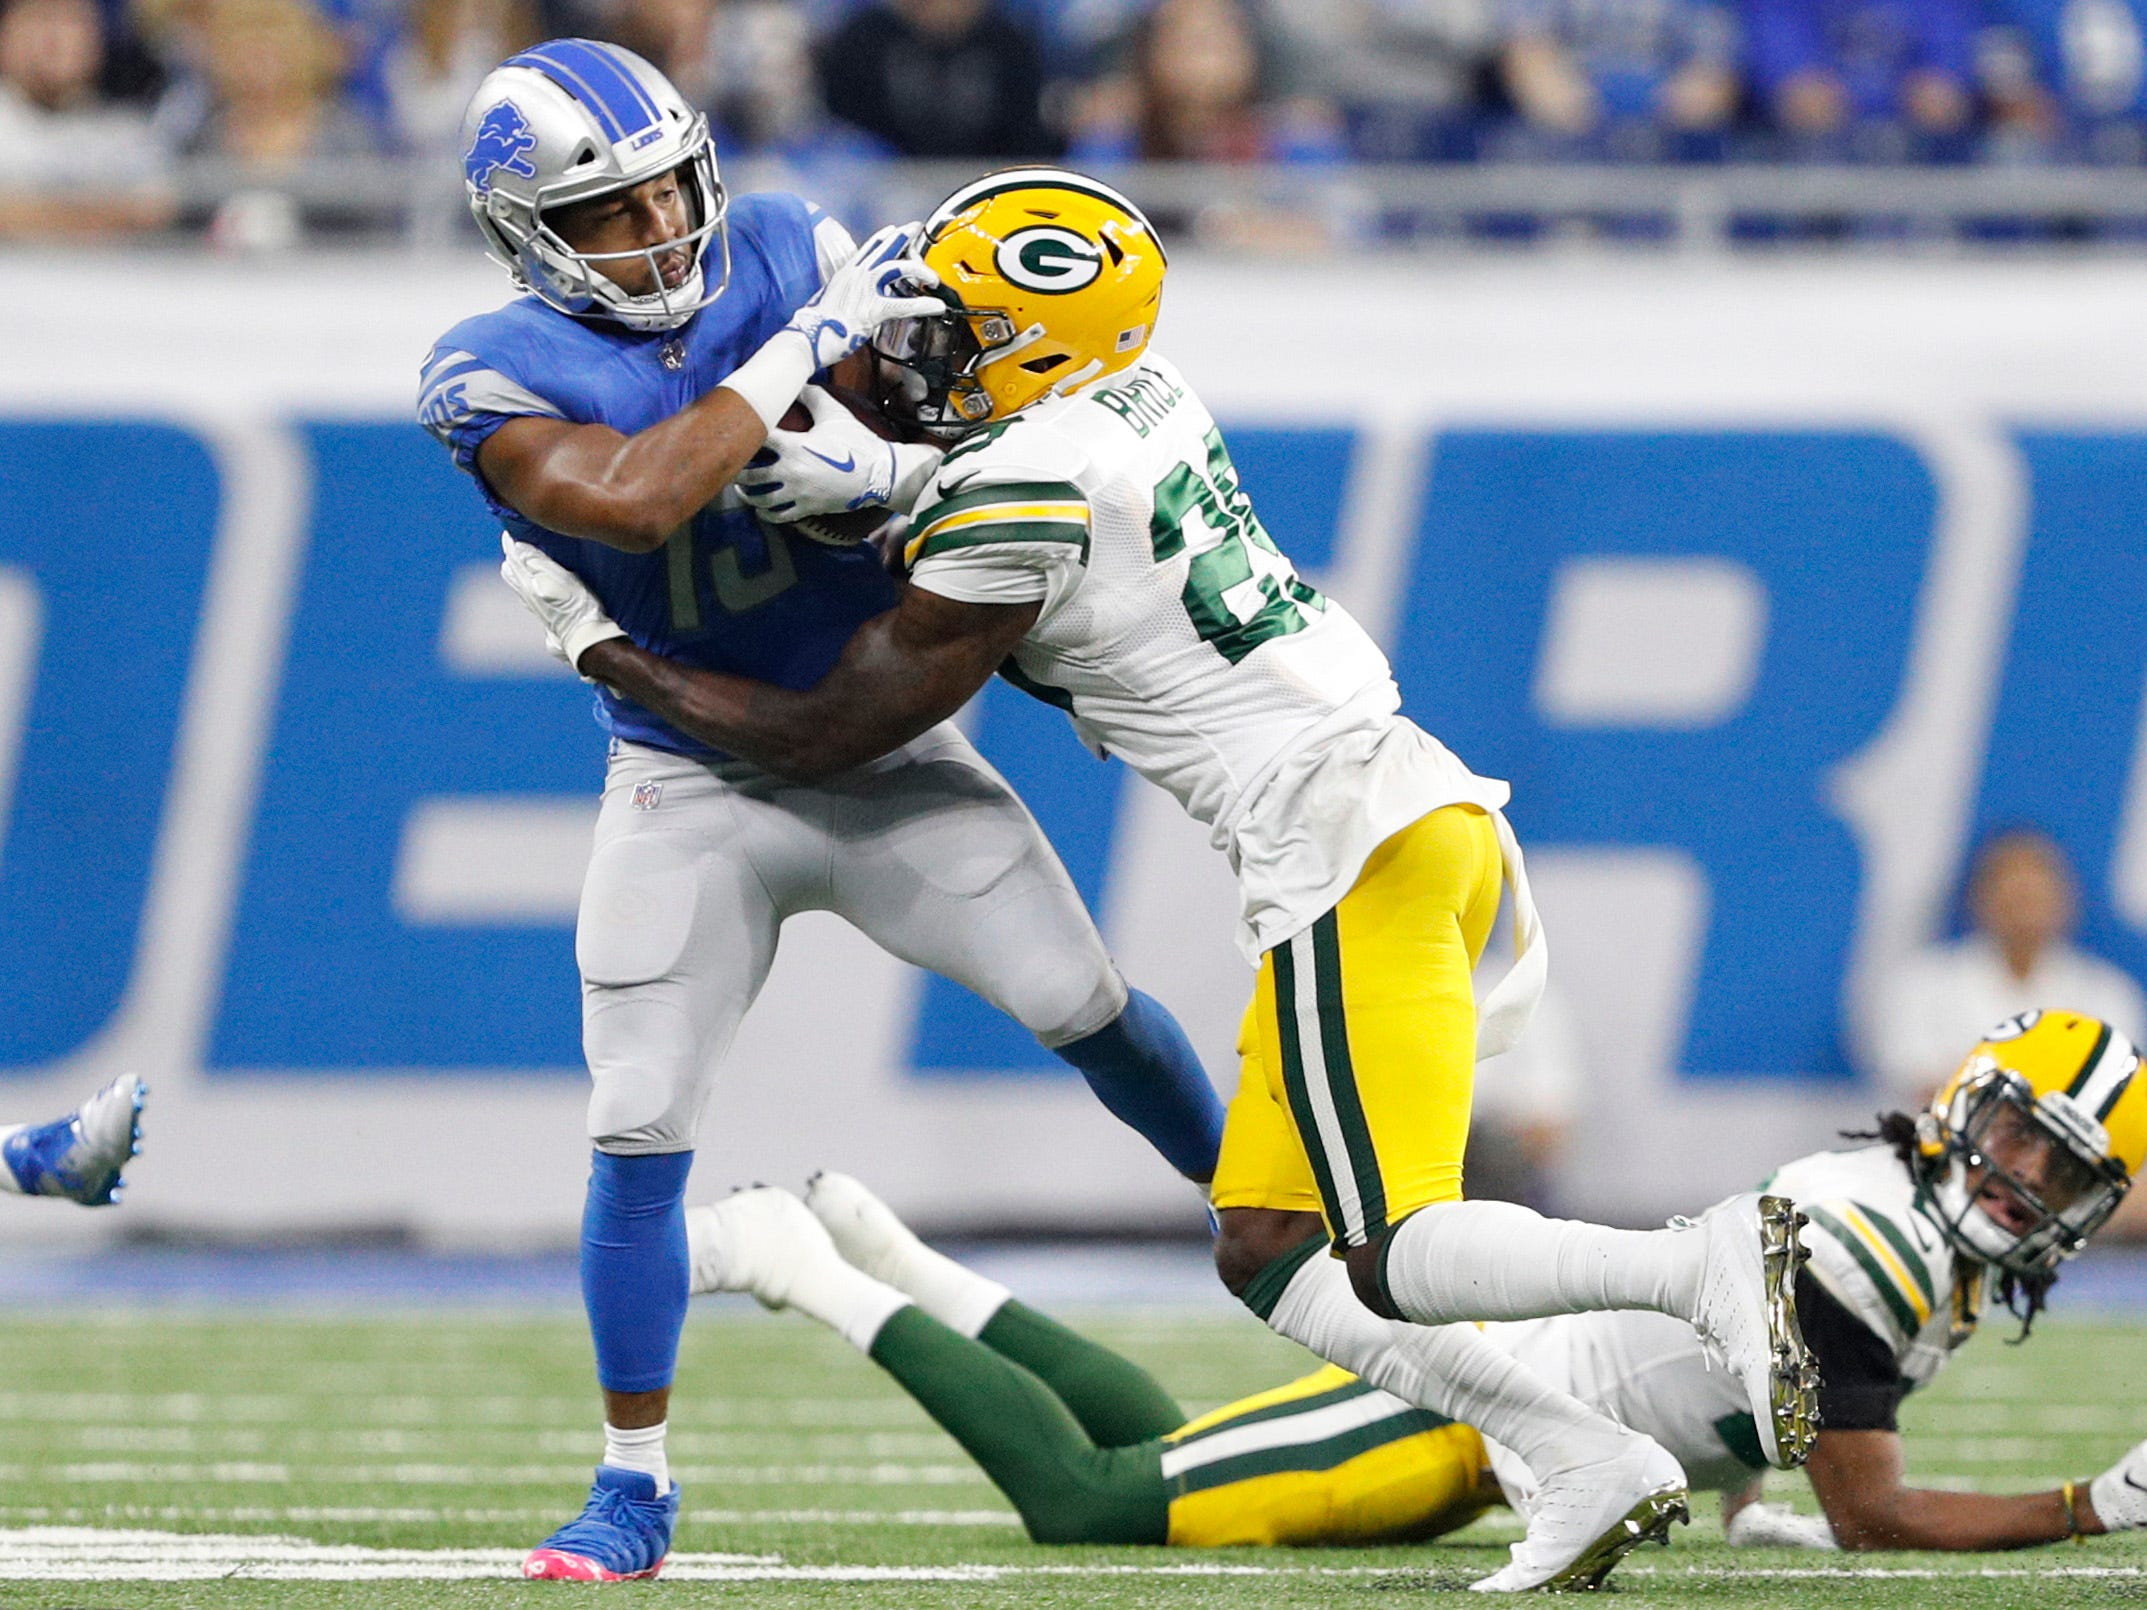 Oct 7, 2018; Detroit, MI, USA; Green Bay Packers strong safety Kentrell Brice (29) tries to tackle Detroit Lions wide receiver Golden Tate (15) during the second quarter at Ford Field.